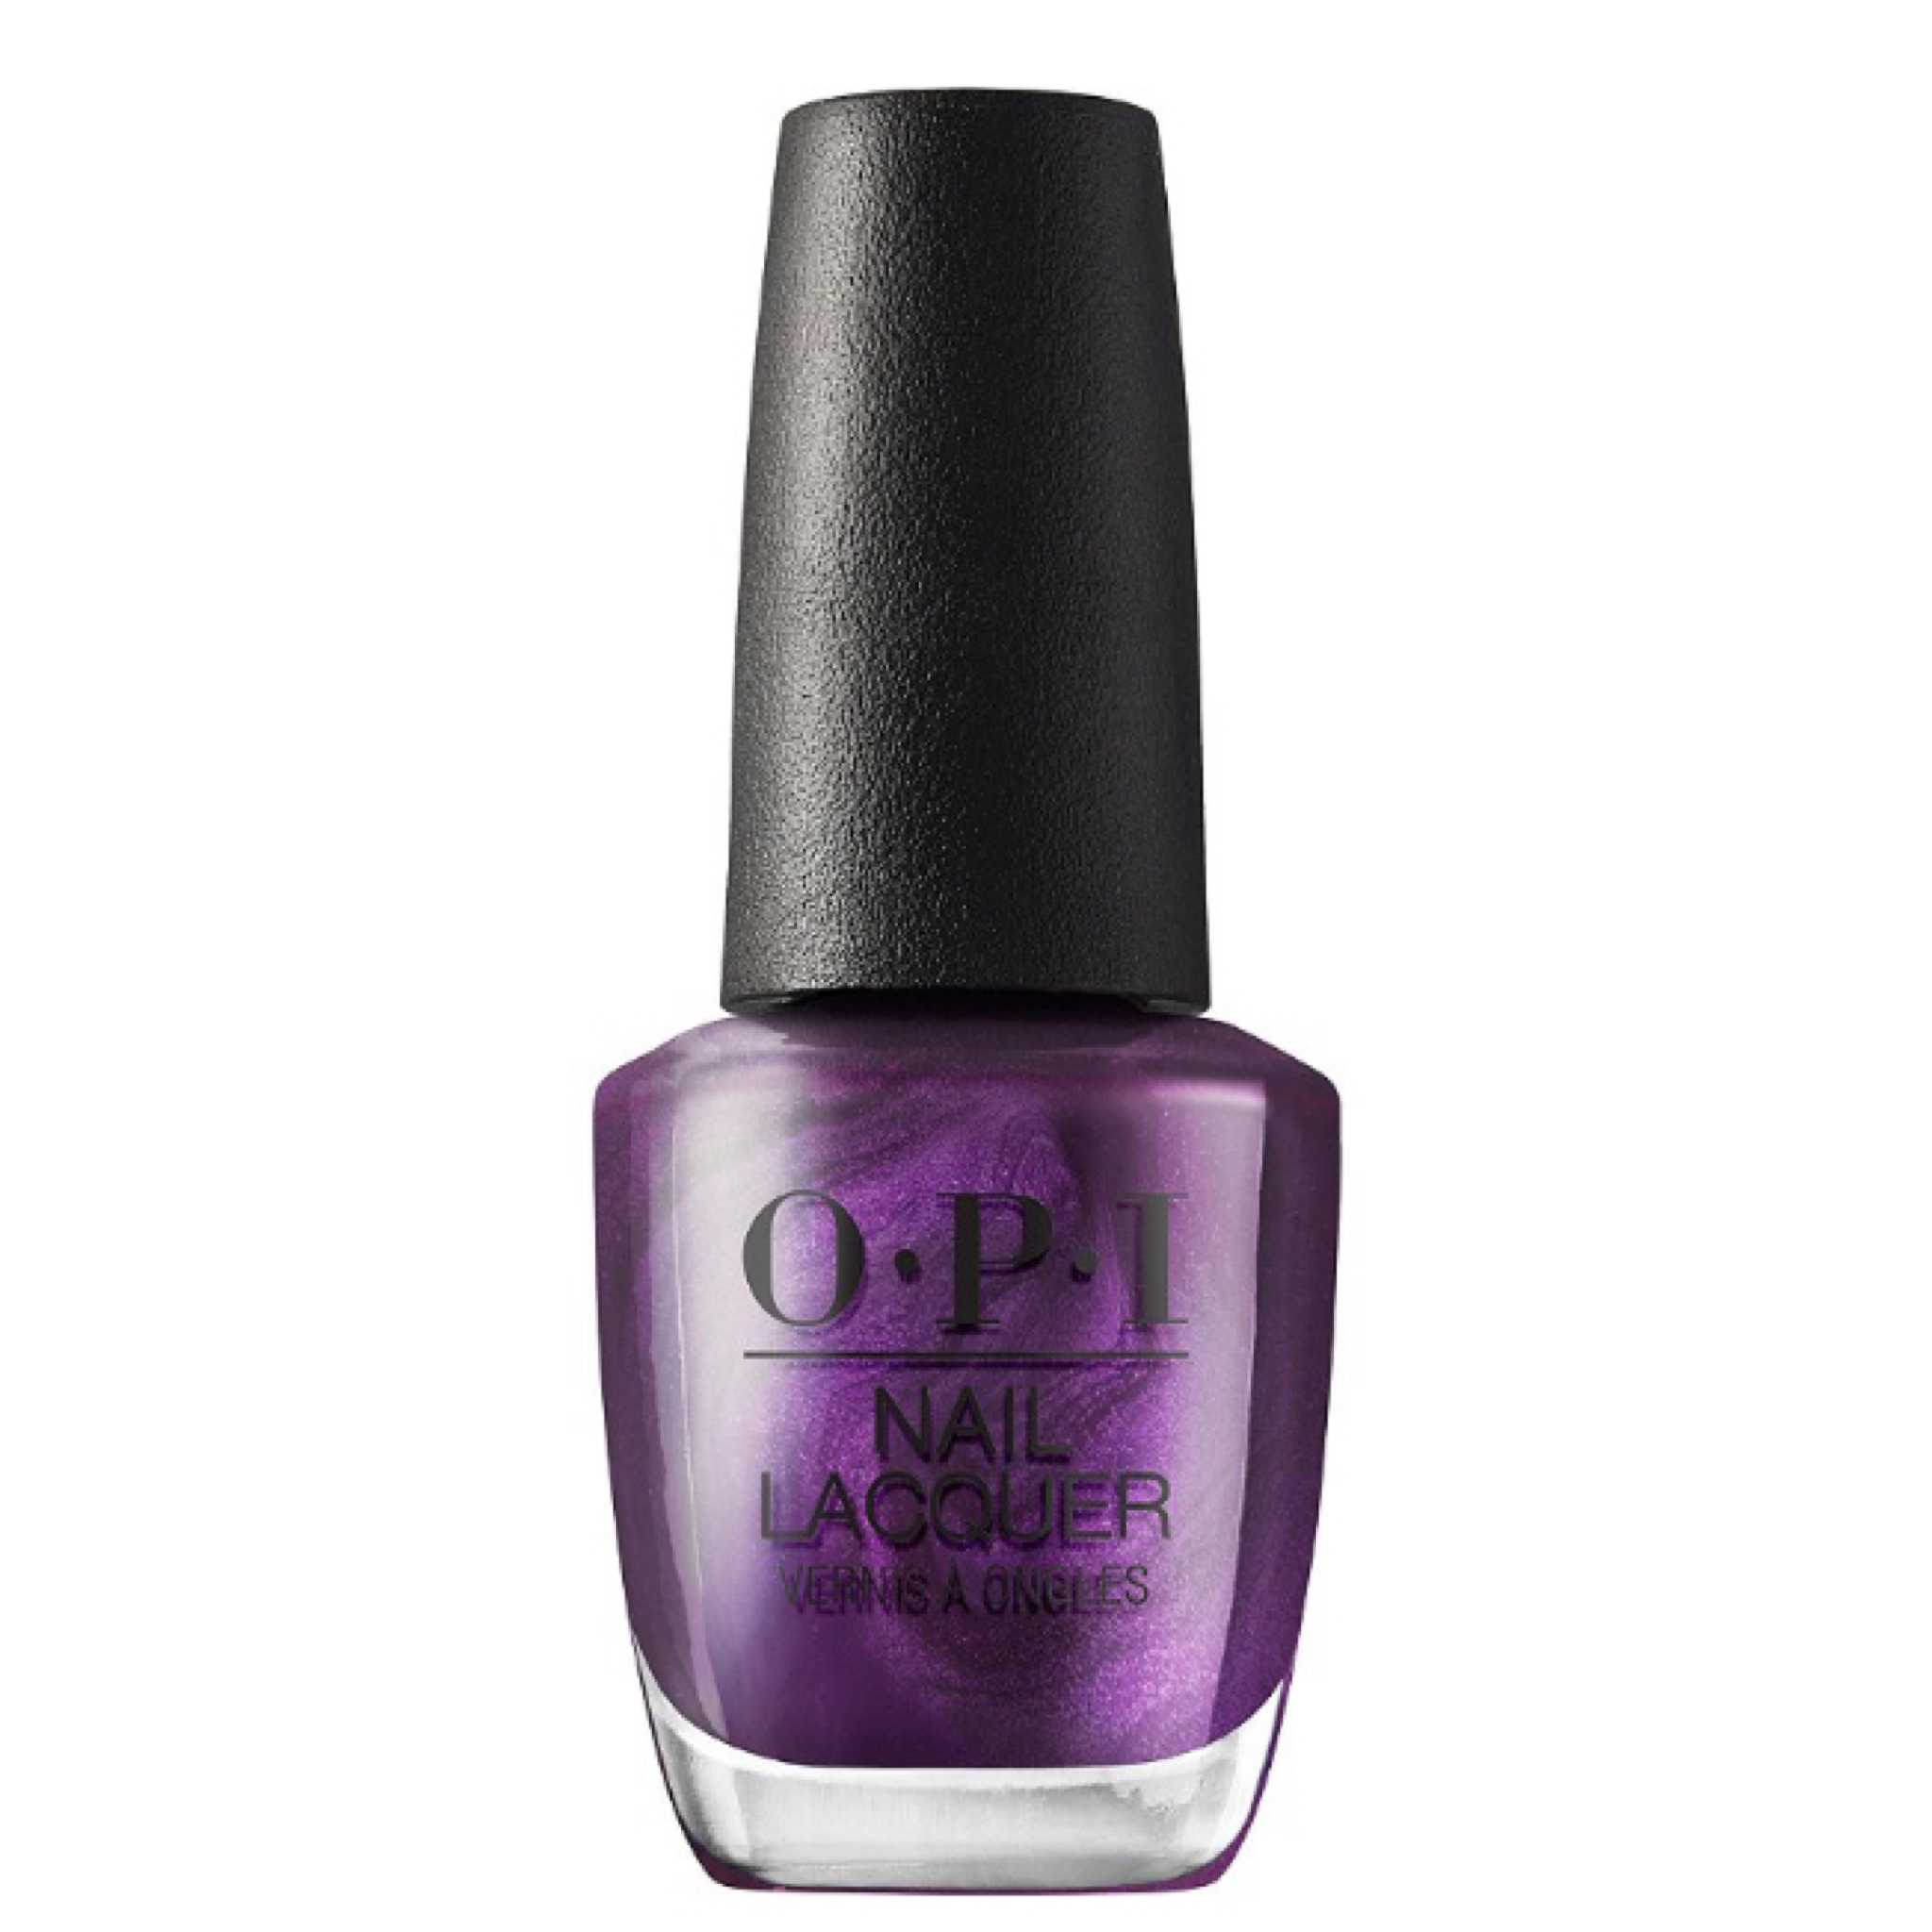 OPI Shine Bright Holiday 2020 Collection